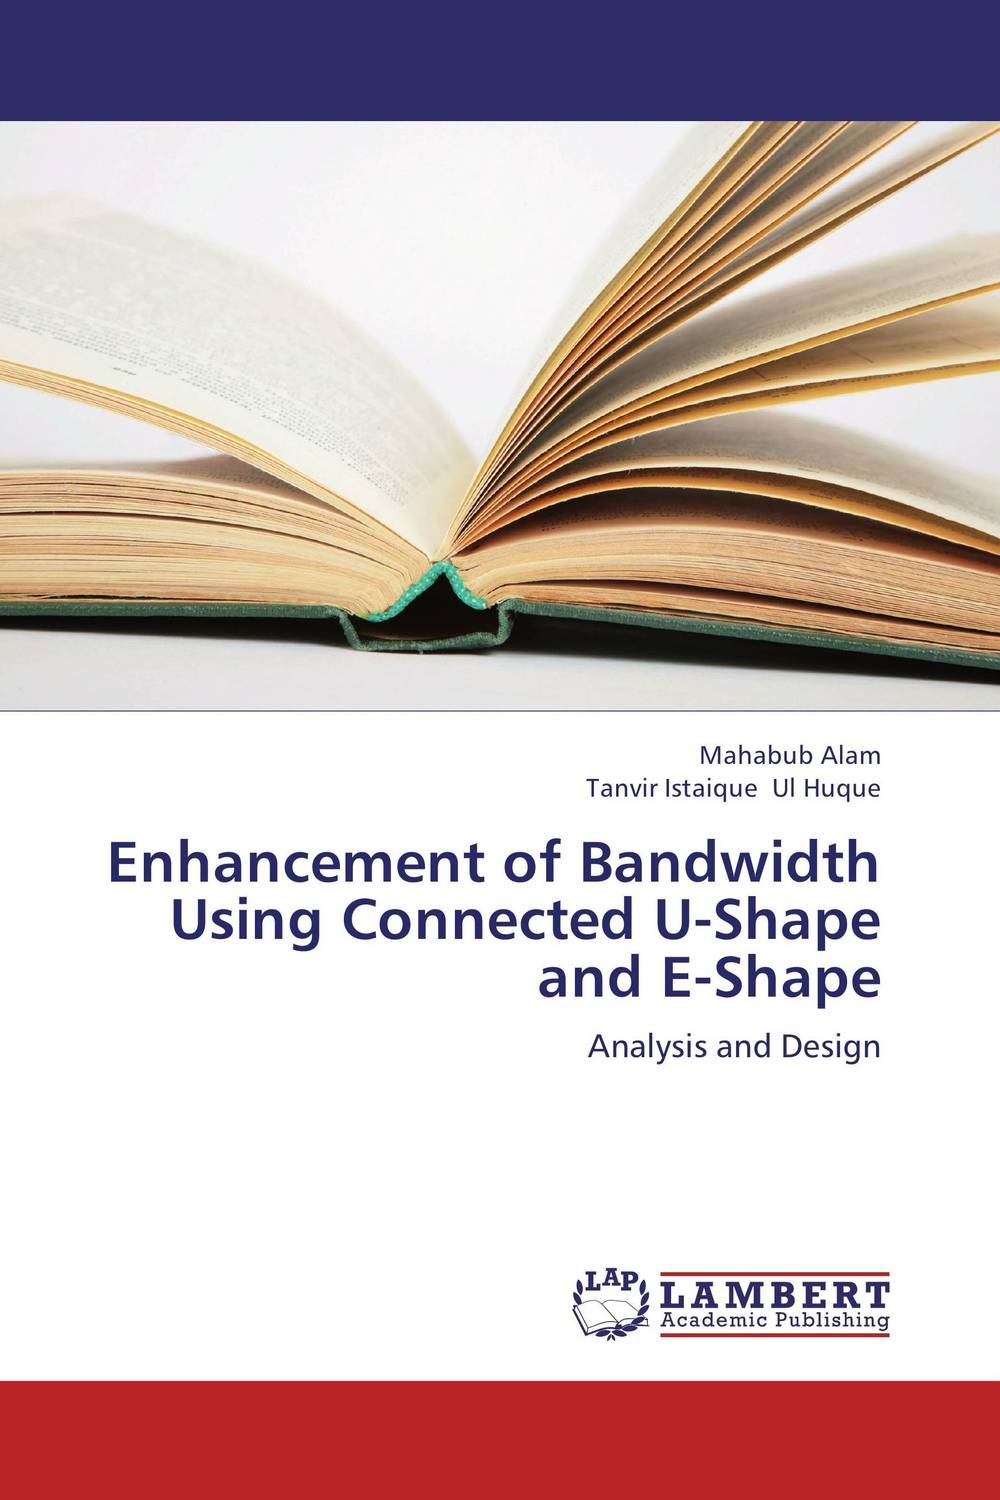 Enhancement of Bandwidth Using Connected U-Shape and E-Shape lora grig купальник wp031202